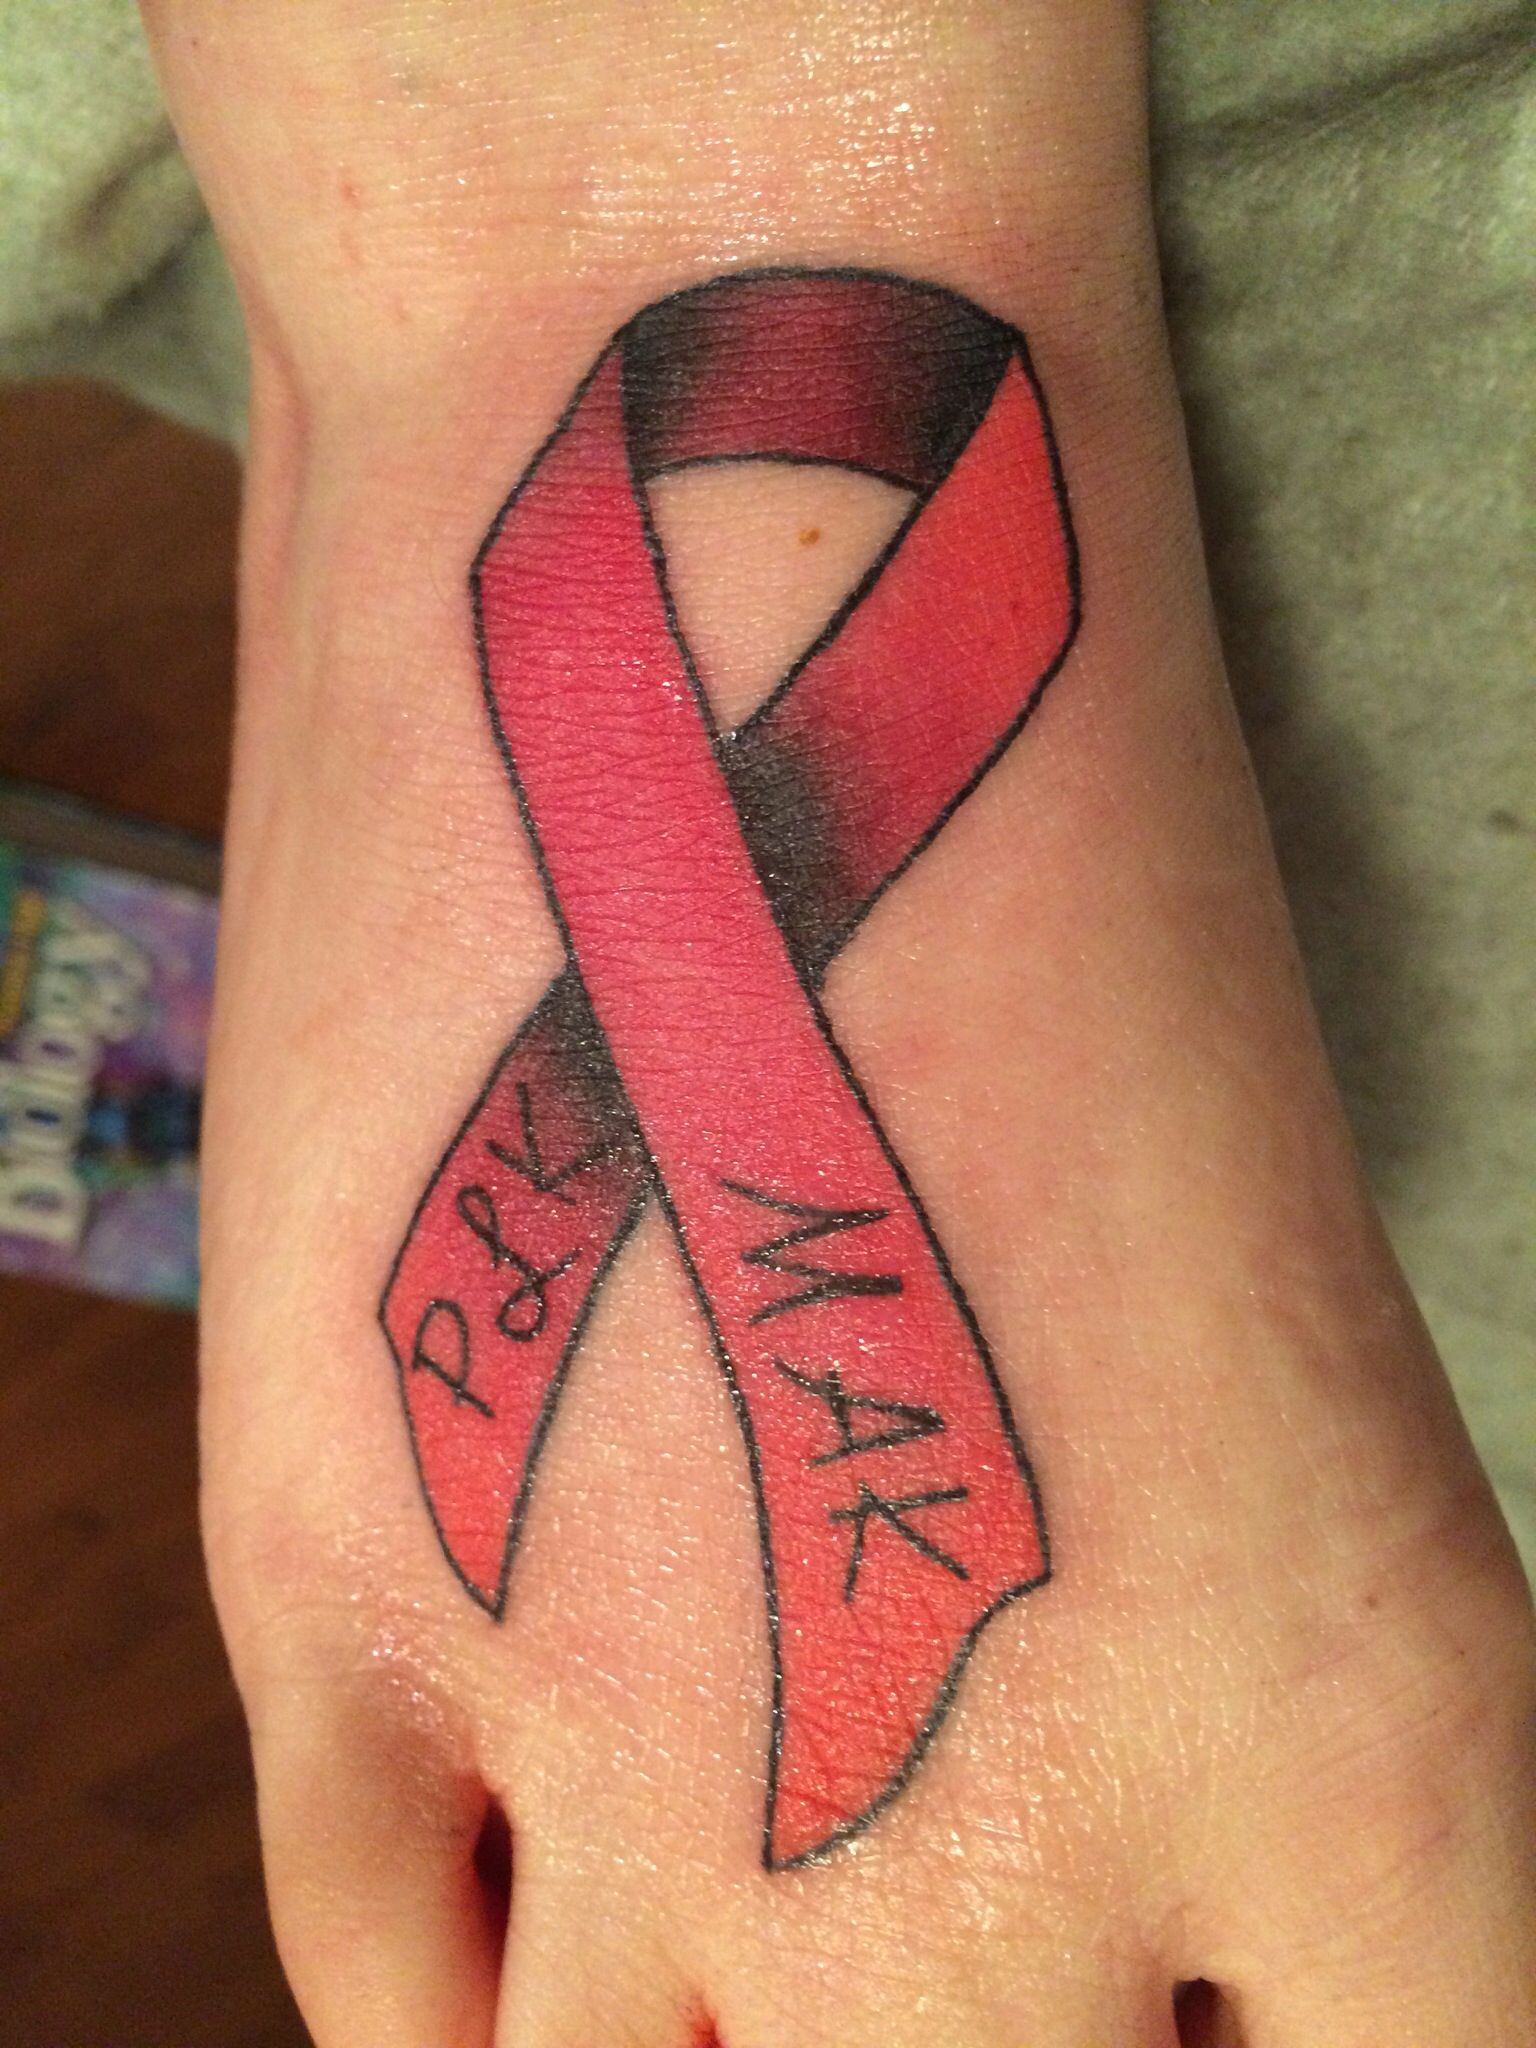 Stroke Awareness Heart Disease Awareness Ribbon Tattoo Tattoos